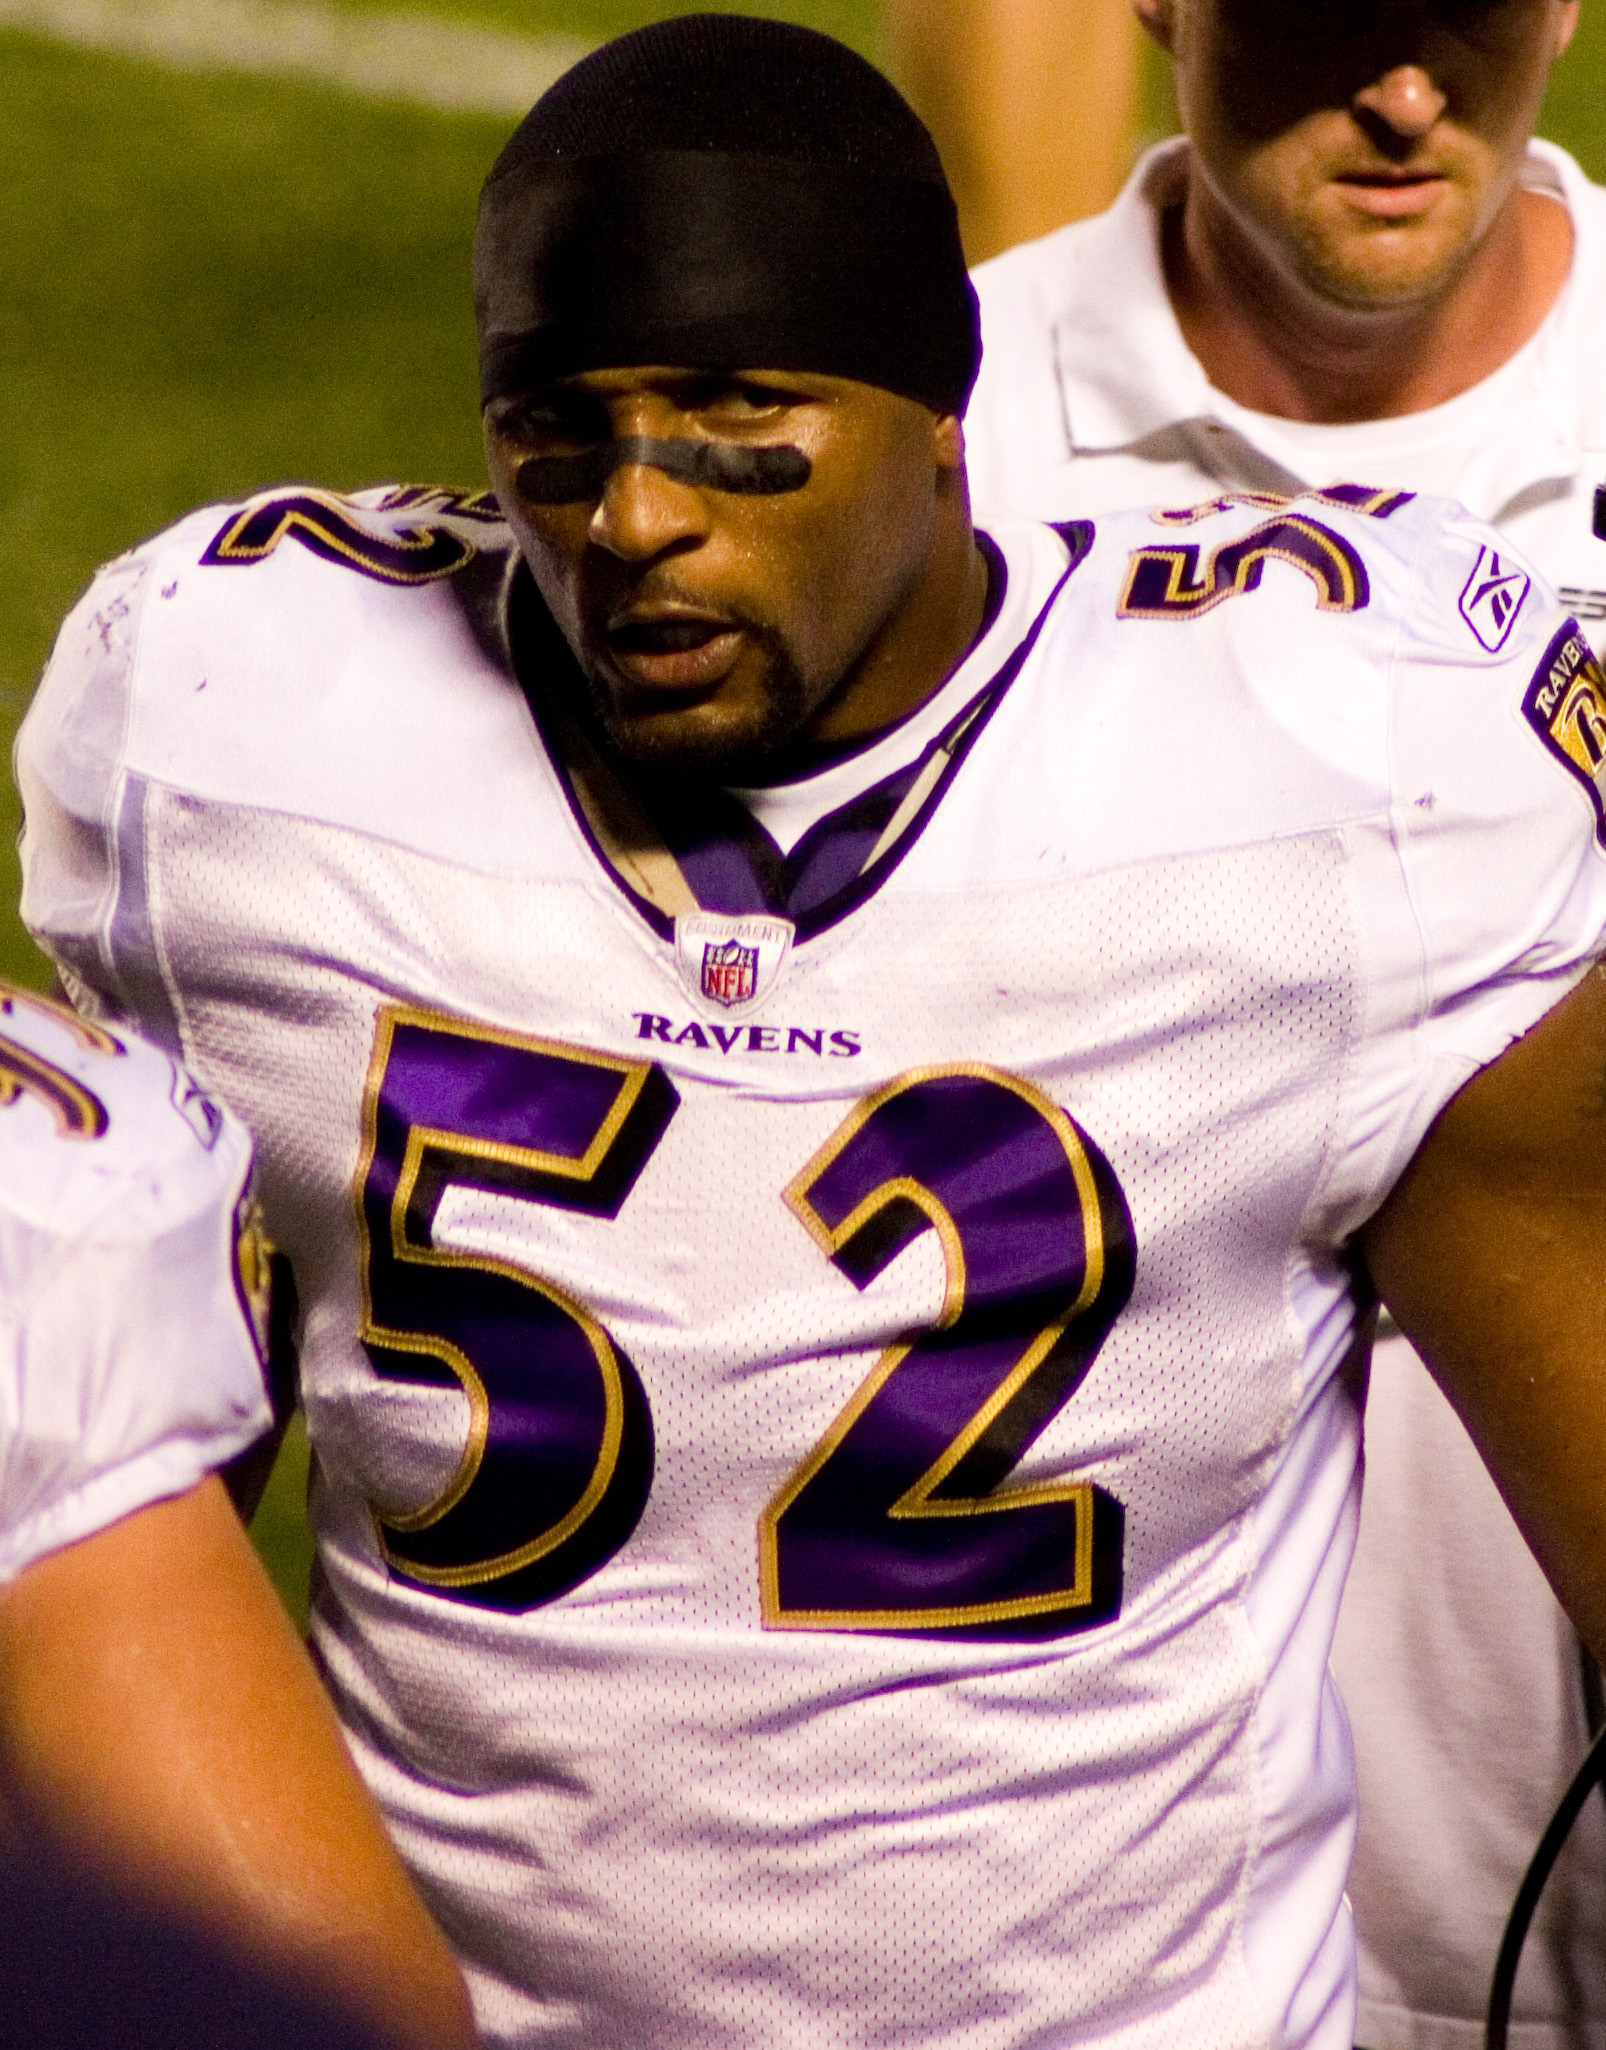 Courtesy of Wikimedia CommonsRay Lewis has been a polarizing figure for most of his career. Superbowl XLVII will be his last game before retirement.